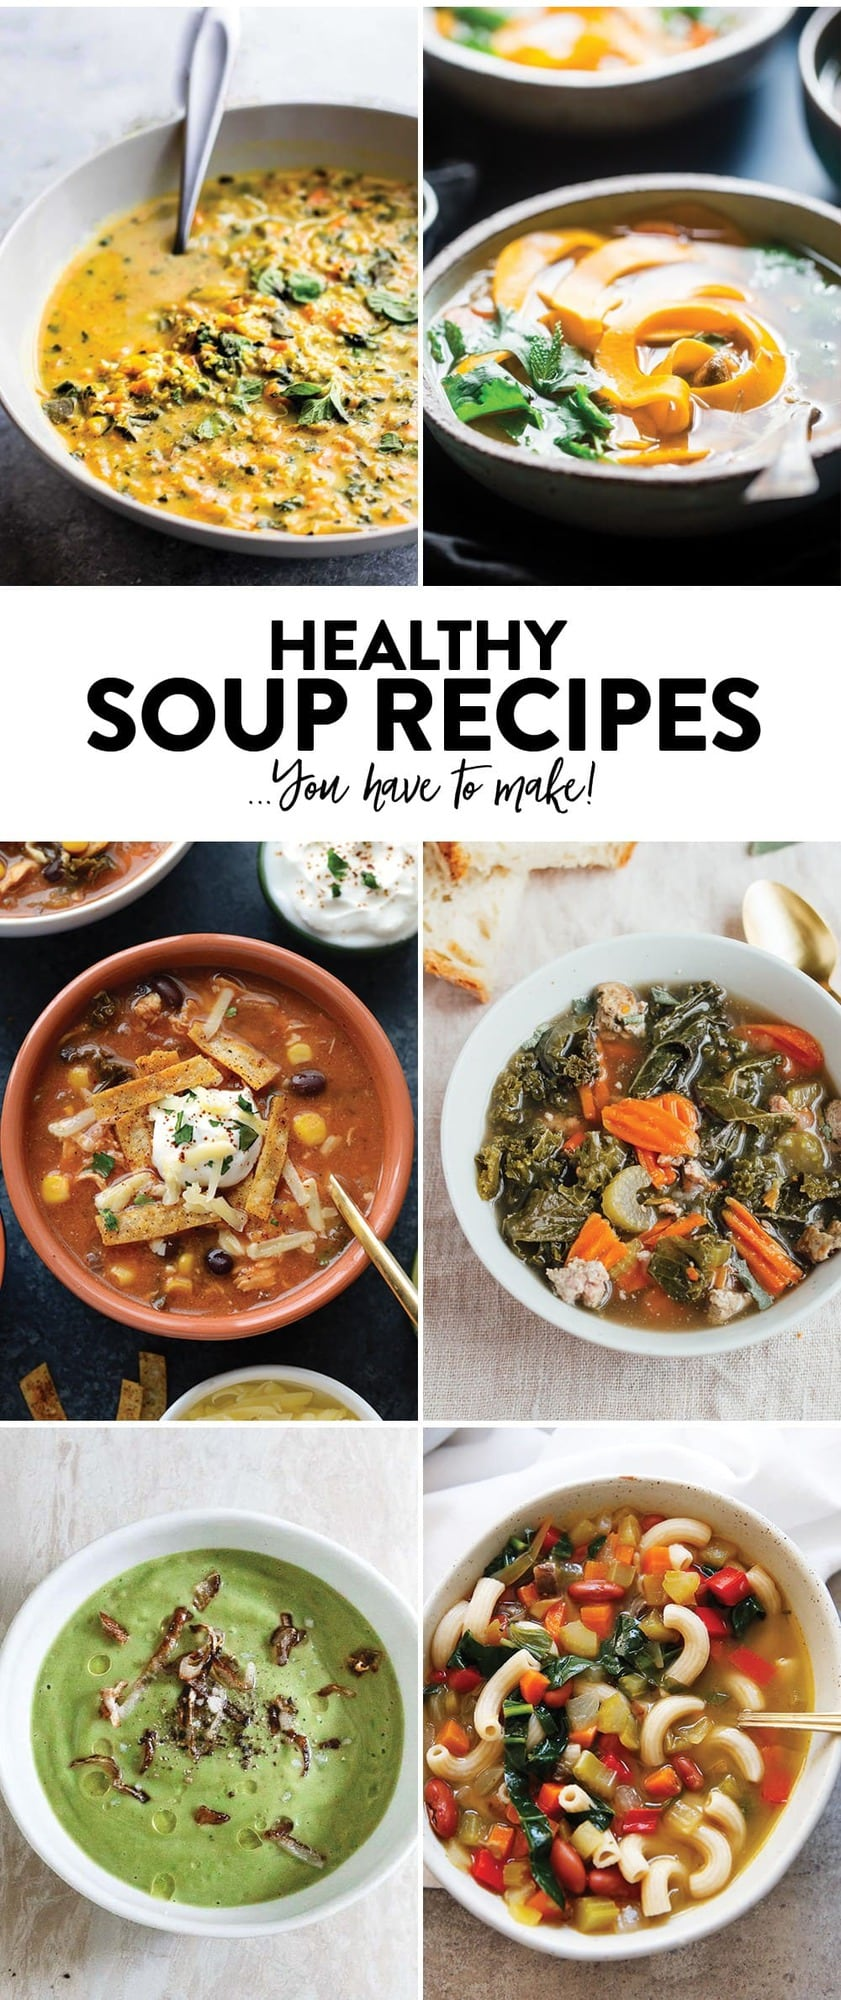 Healthy Soup Recipes...you have to make!